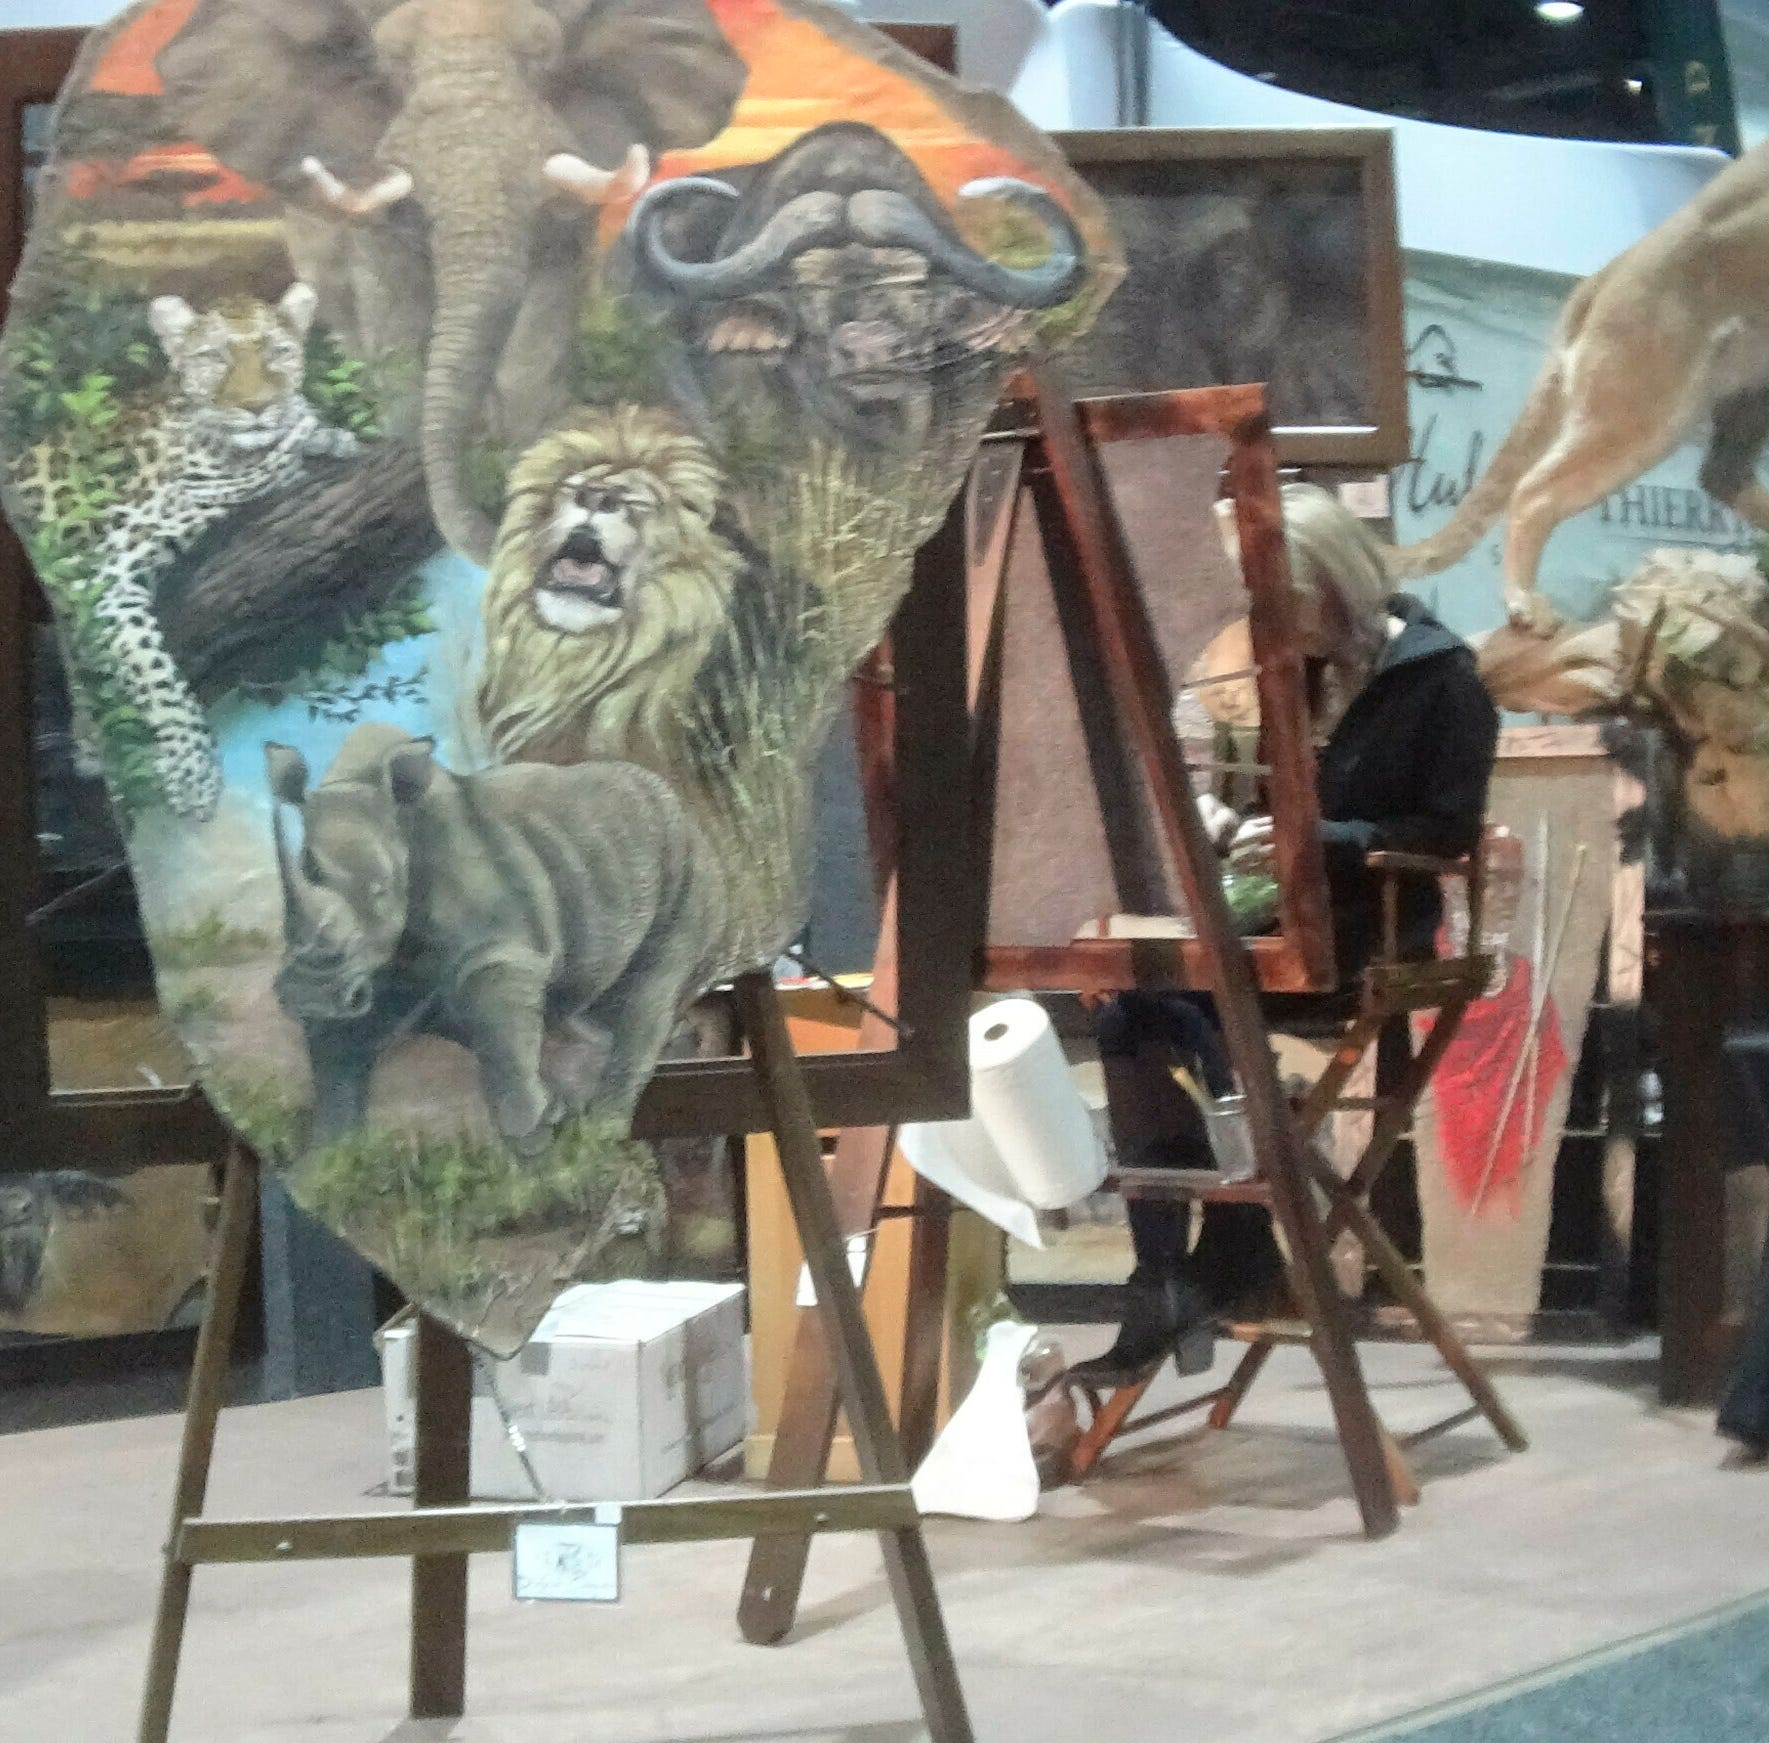 Products made of threatened African wildlife sold at Safari Club's Reno expo